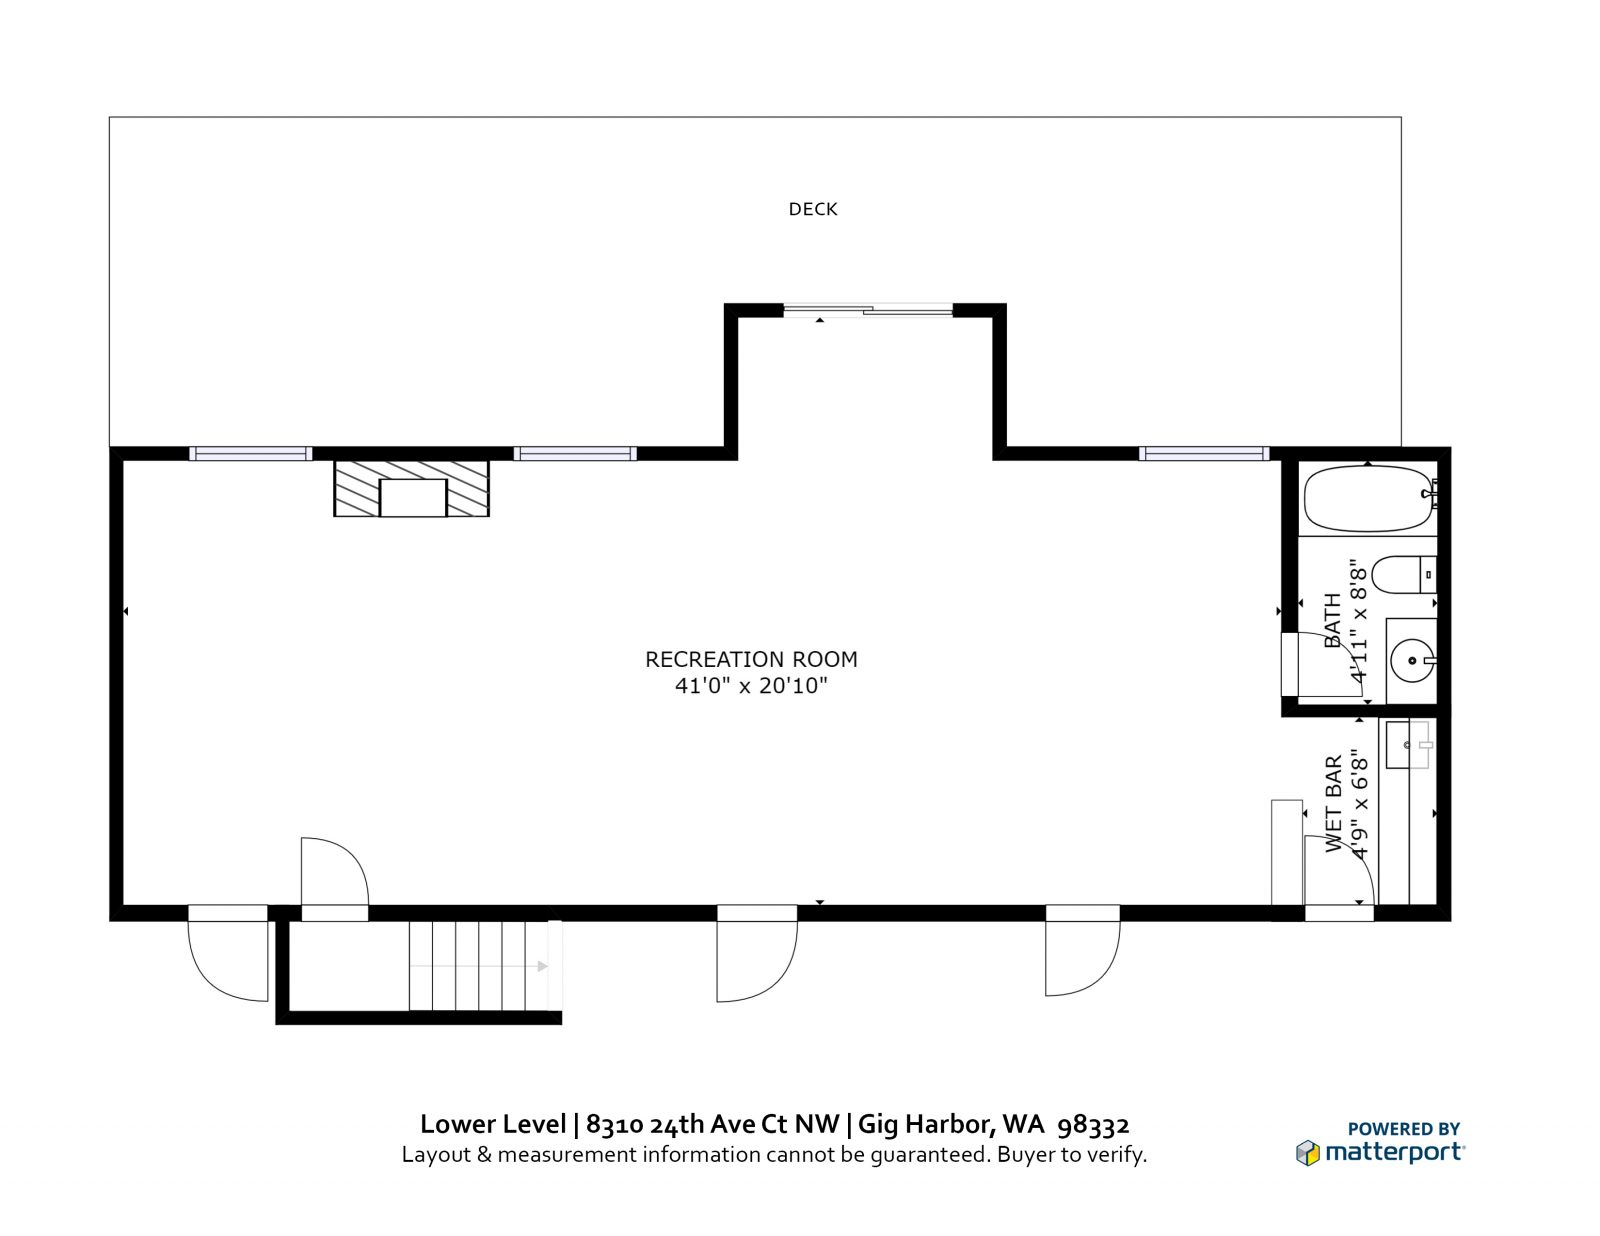 LOWER LEVEL: 8310 24th Ave Ct NW